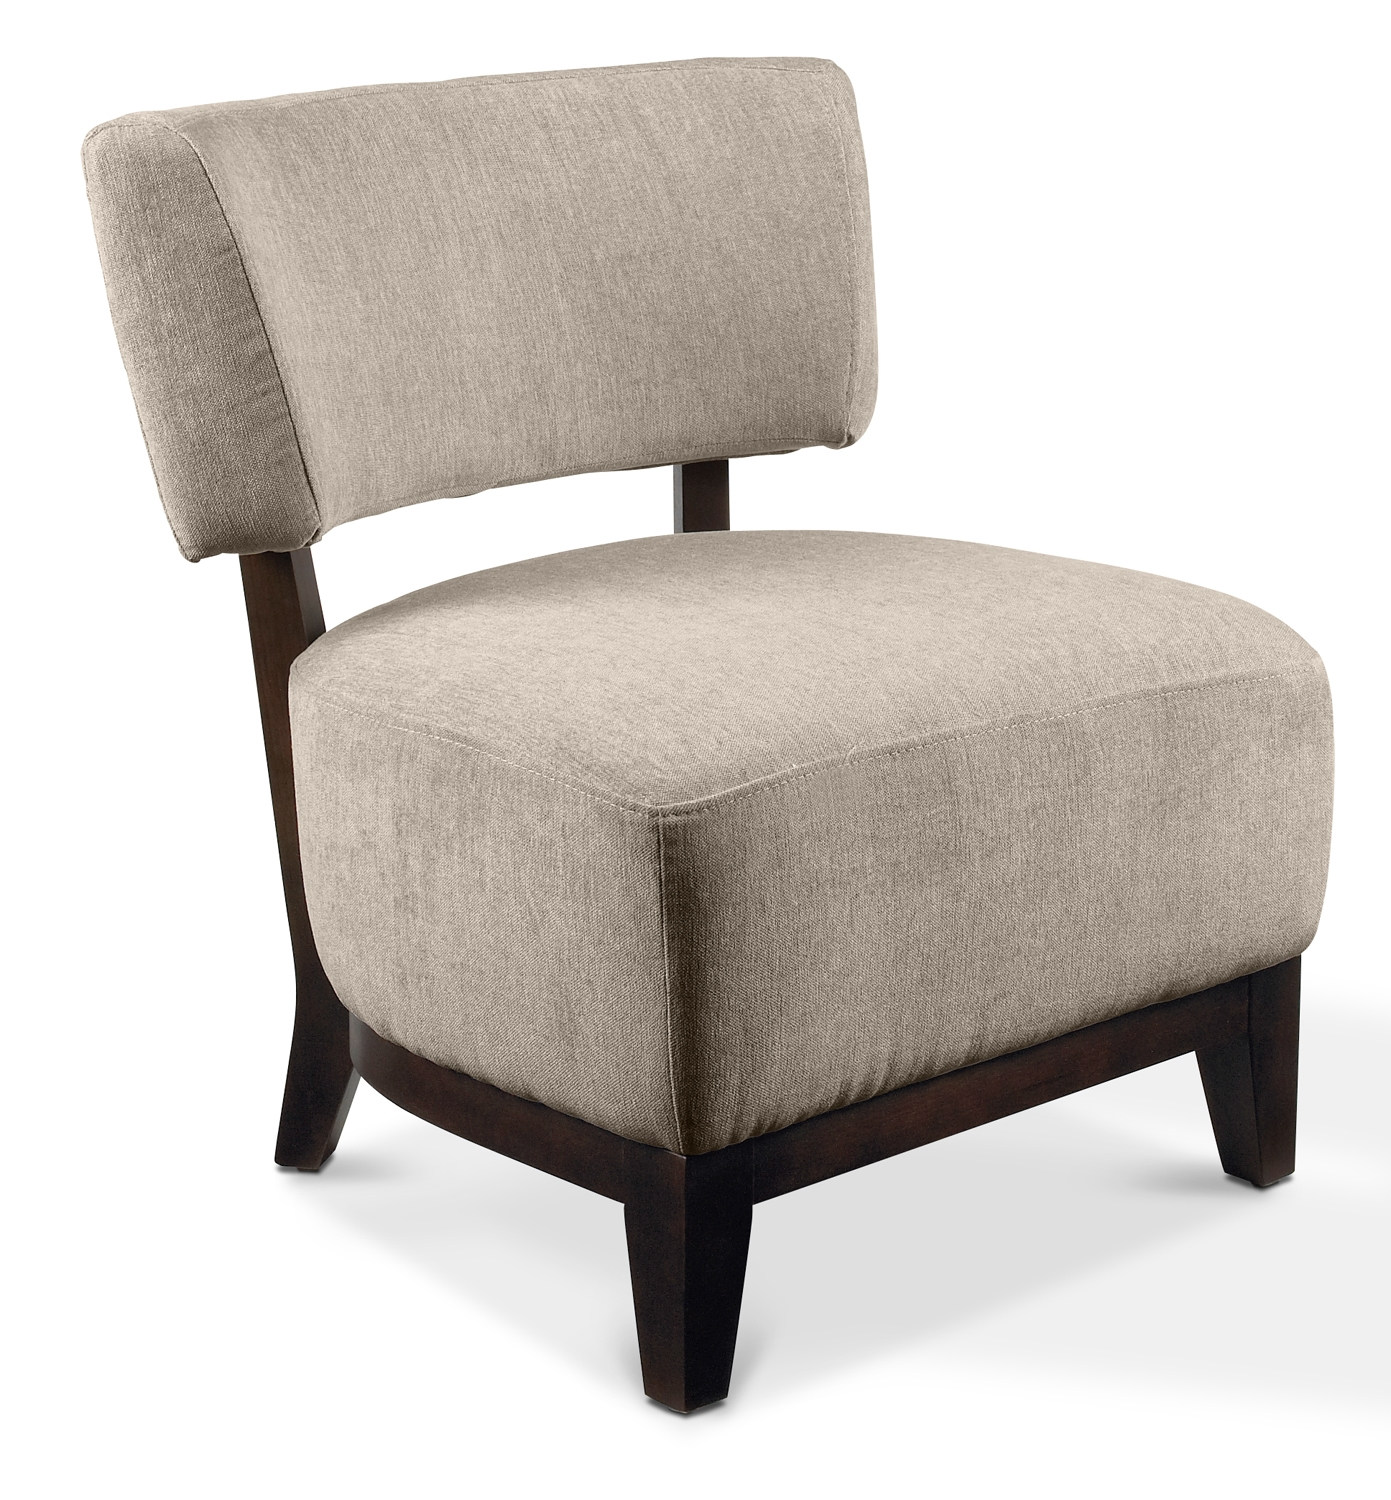 Best accent chair homesfeed for Accent furniture